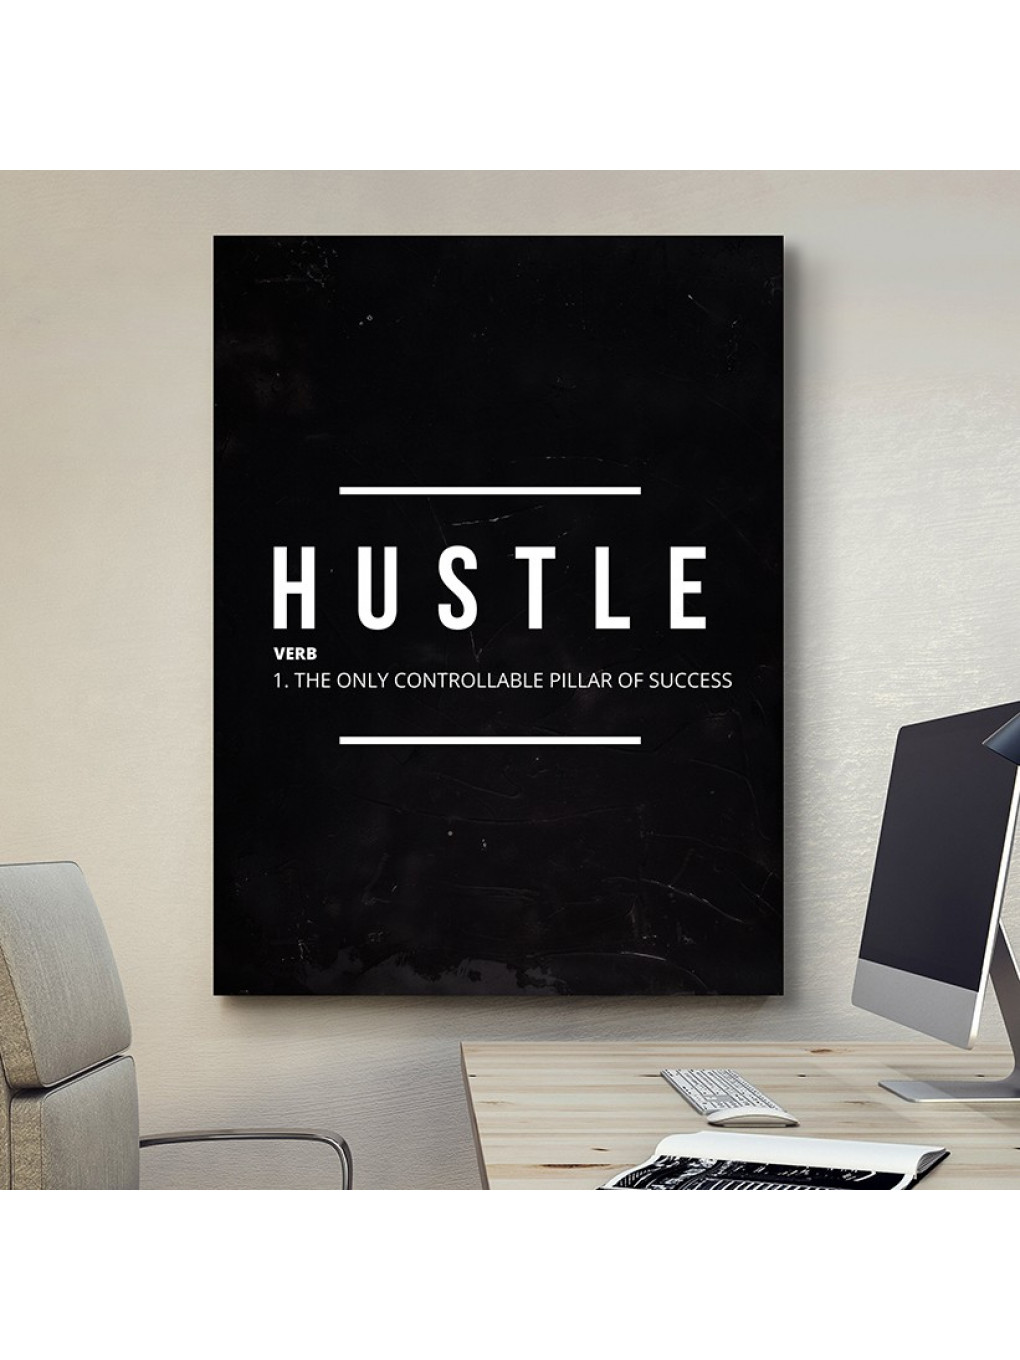 Hustle Verb_HUS481_2